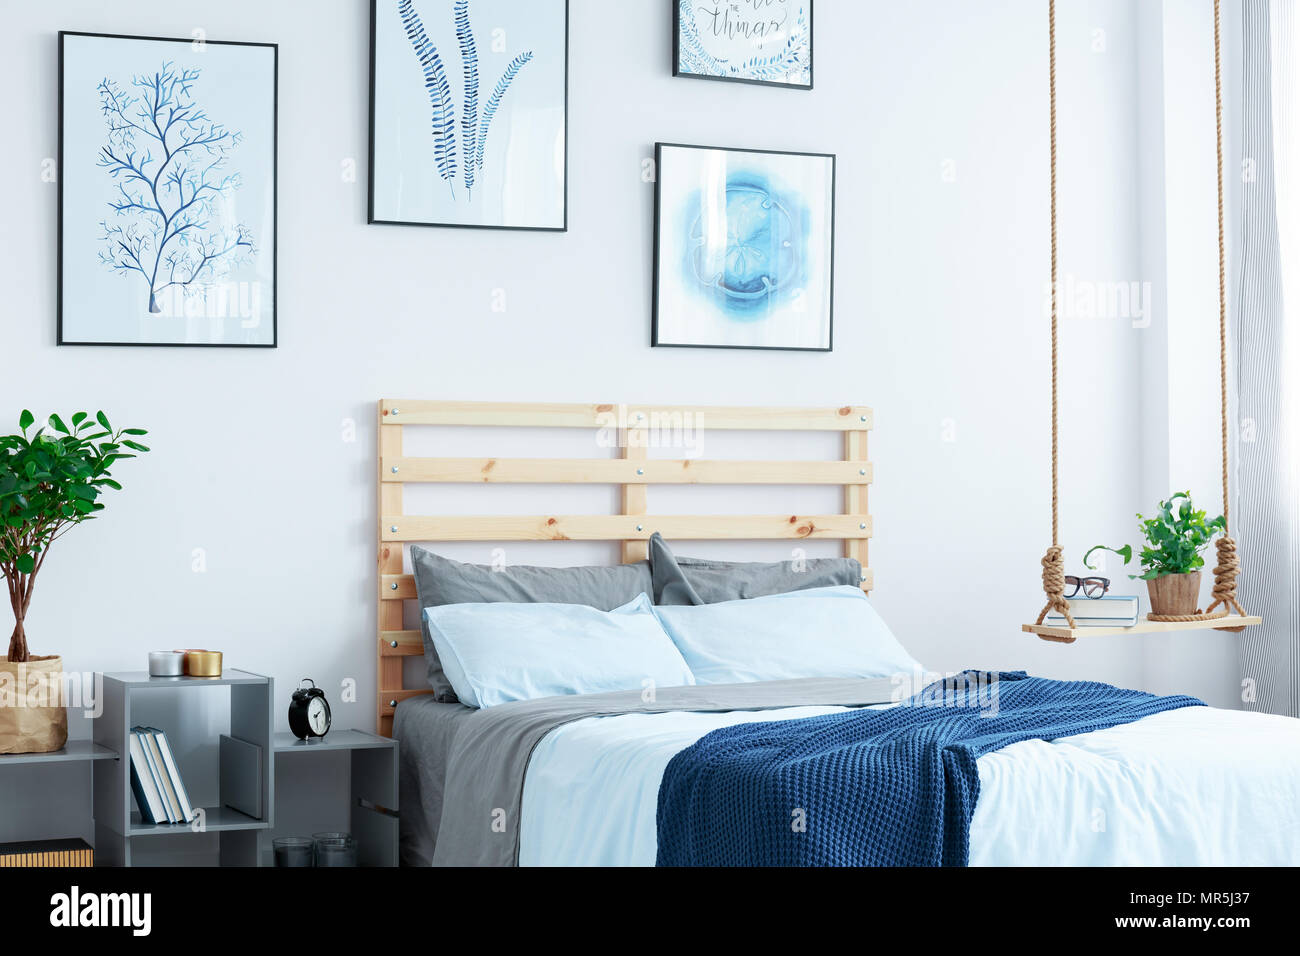 White bedroom with wood bed, swing shelf, wall posters, plants Stock ...